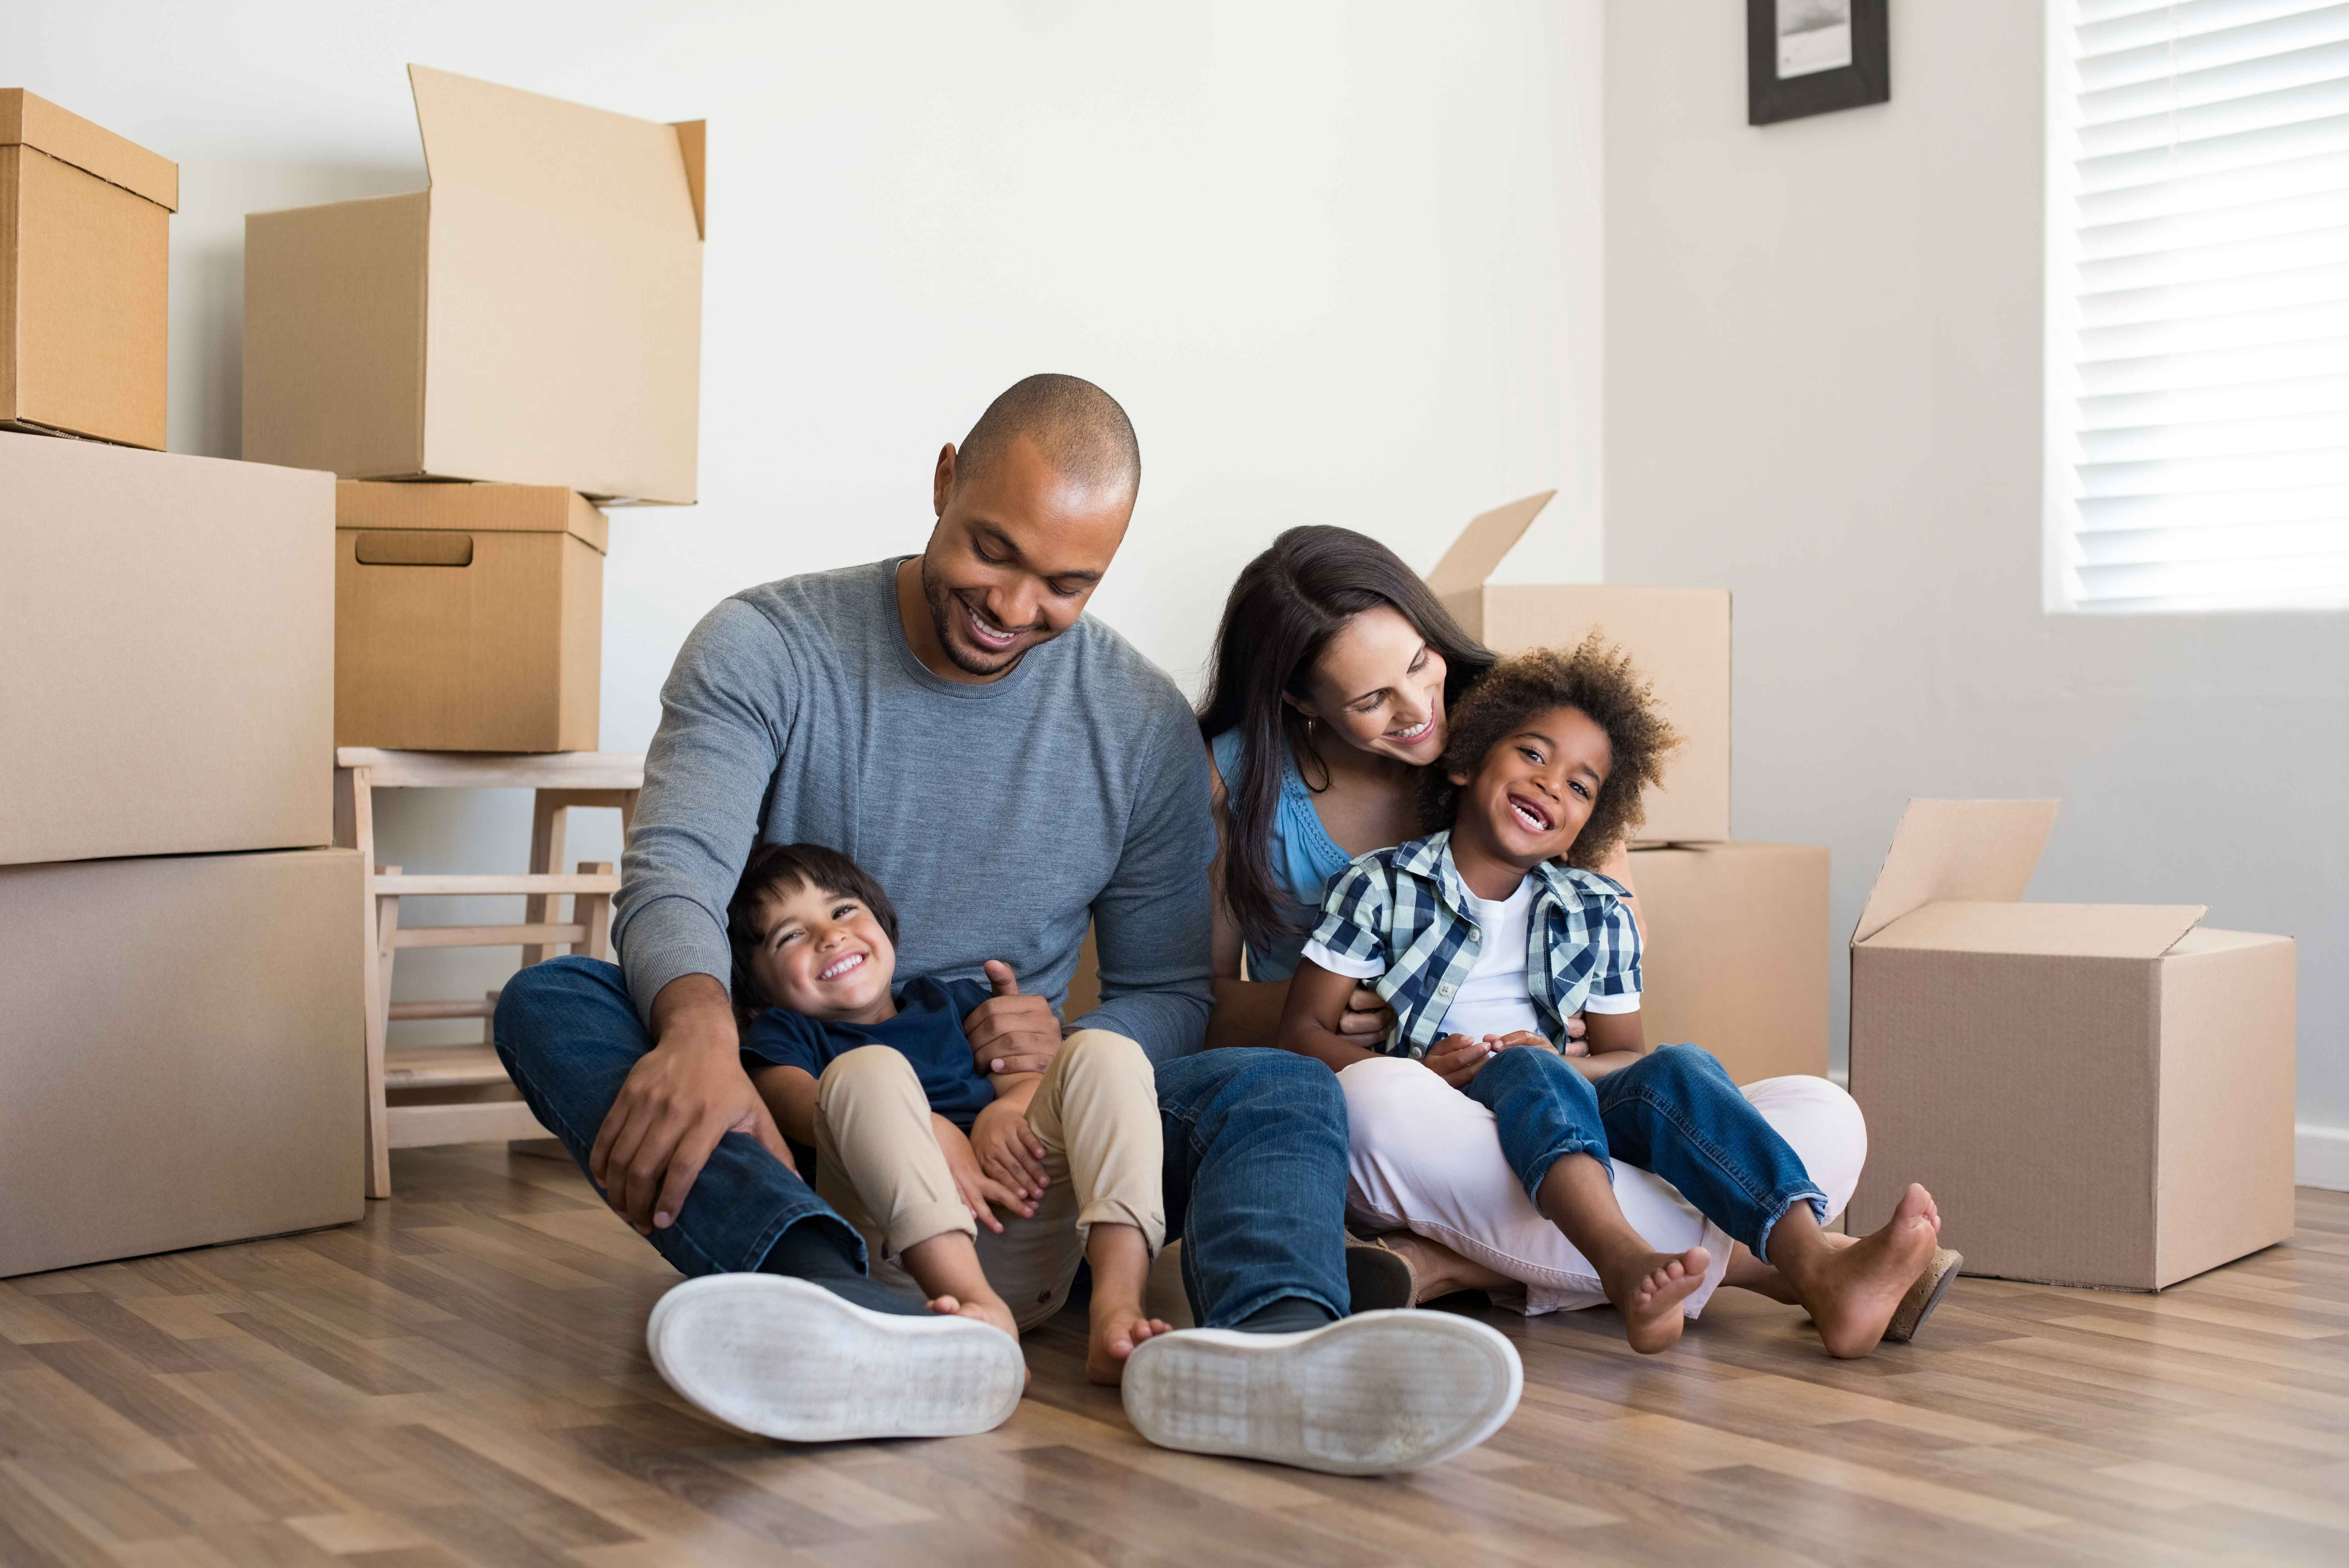 Happy family sitting in a new home with boxes surrounding them